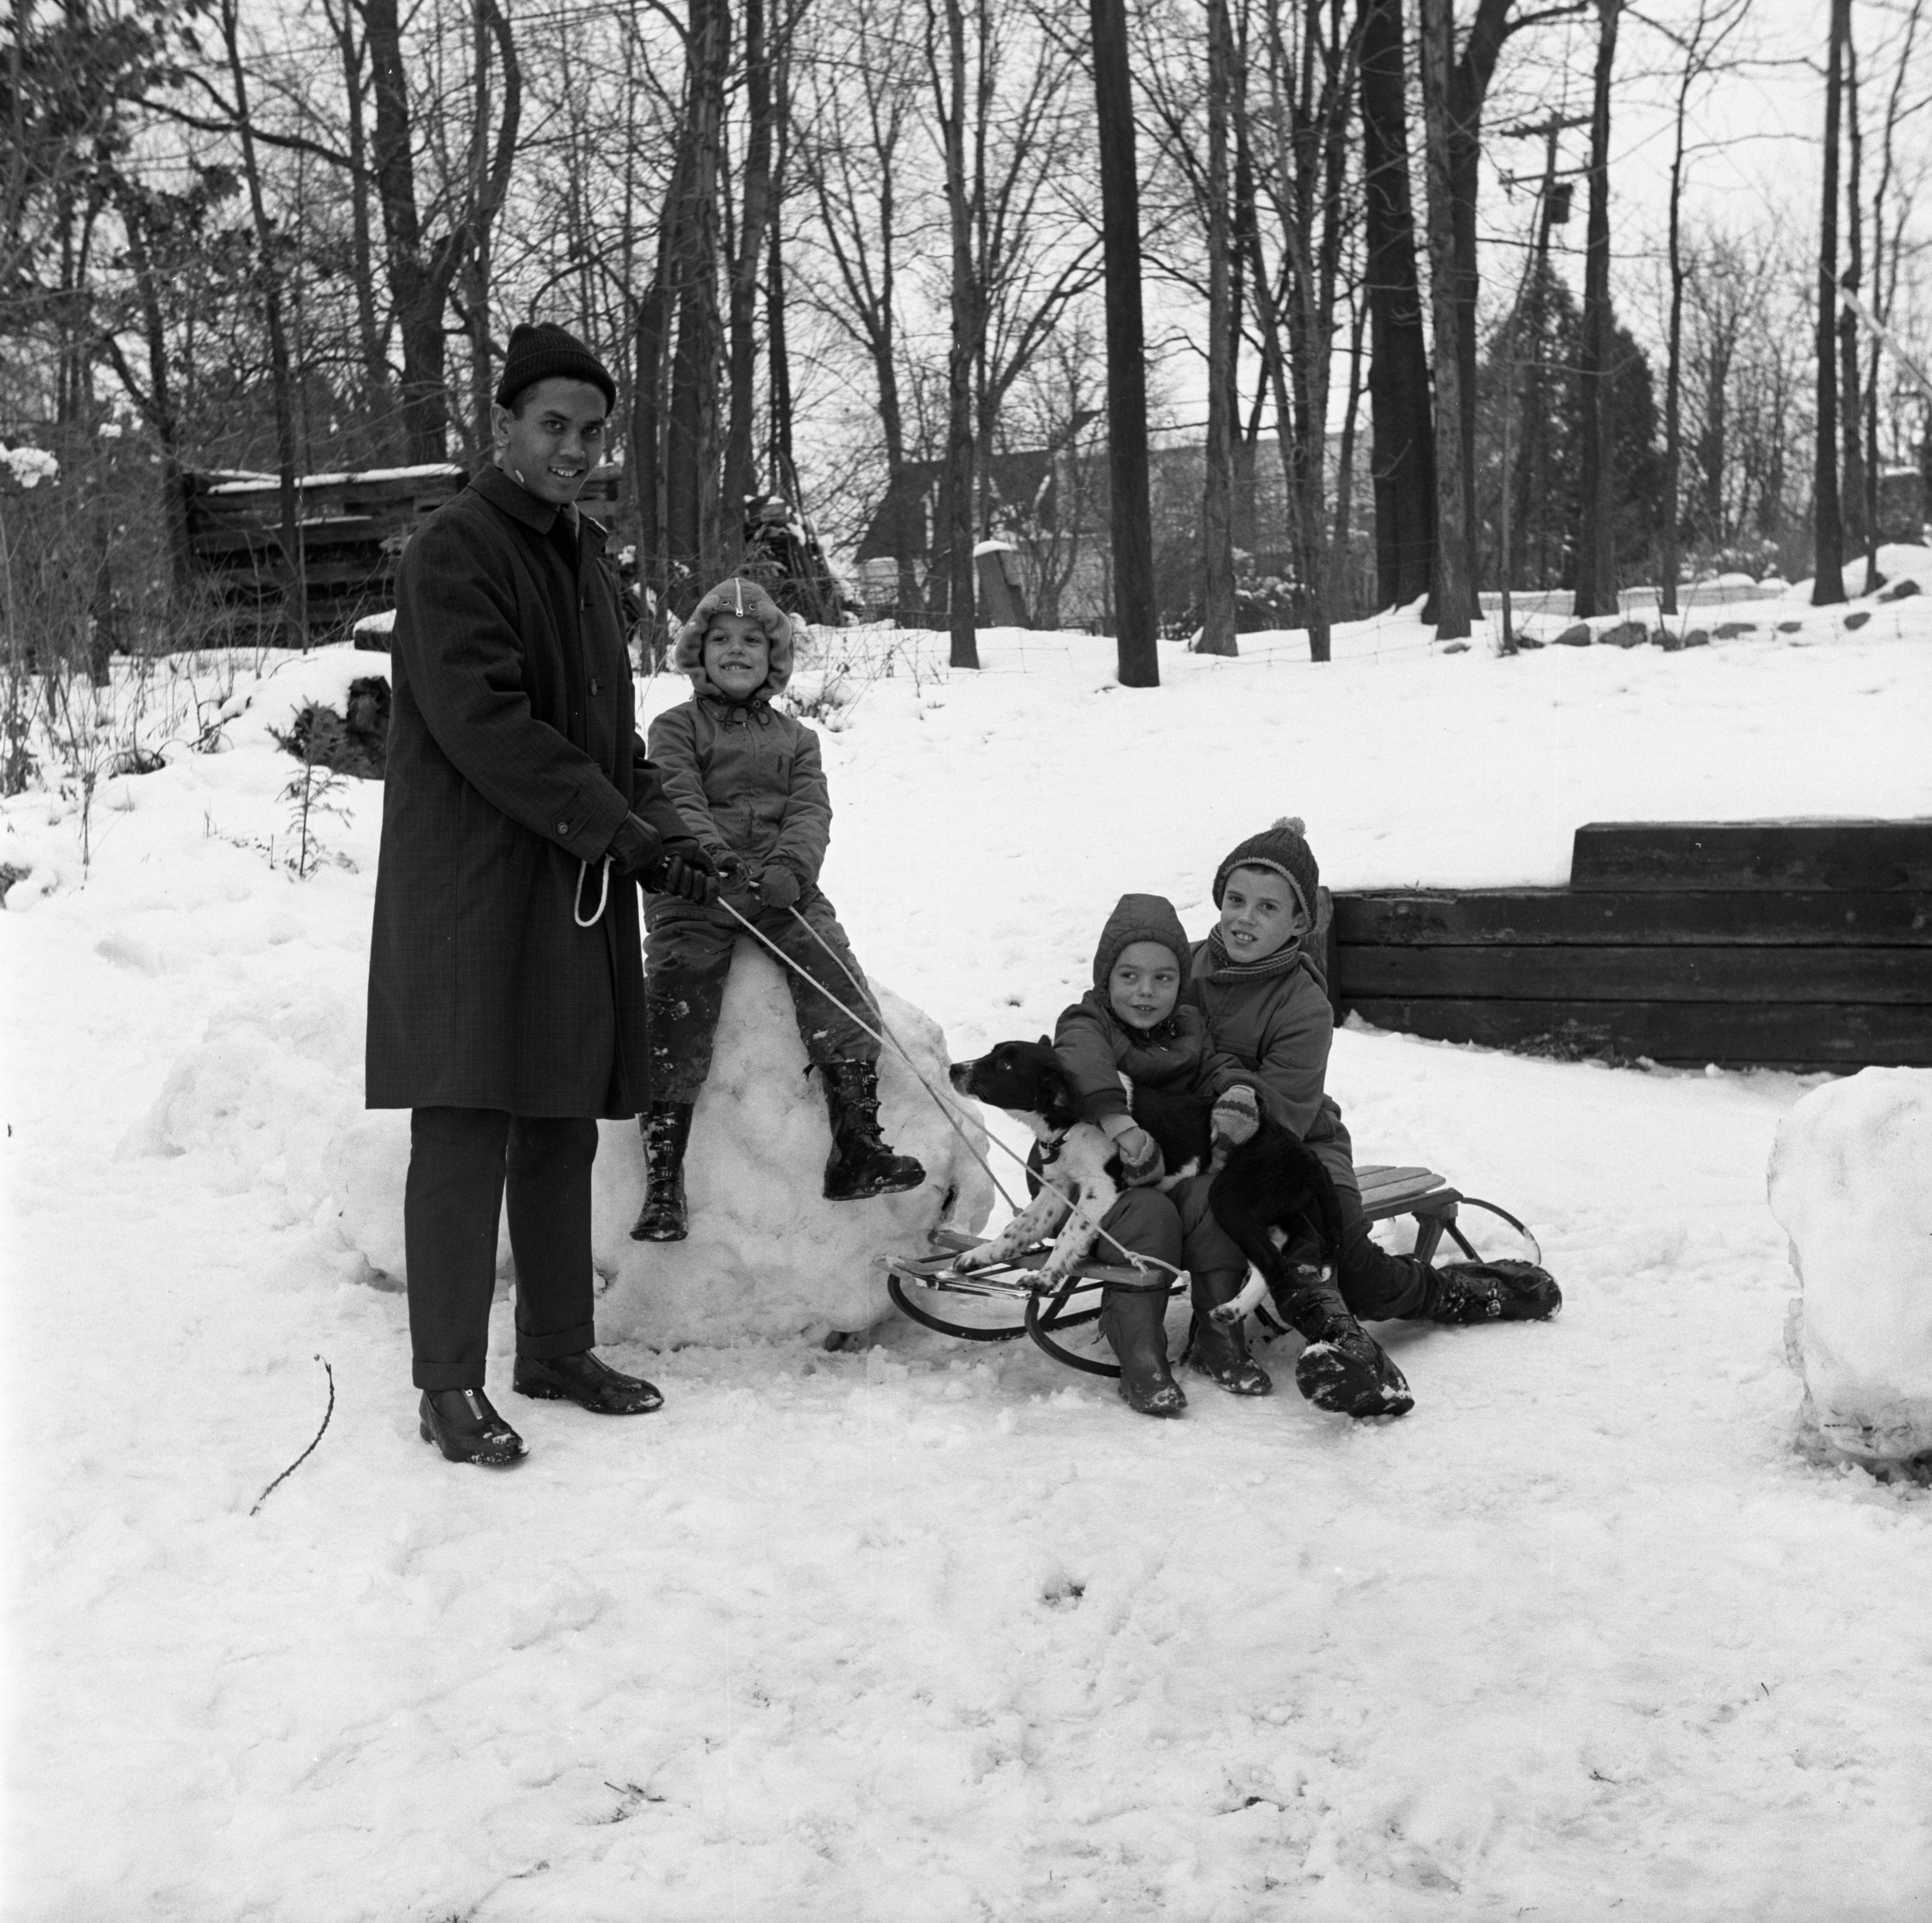 Sri Hardjoko Wirjomartono, UM Student From Java, With Children Of Wilfred Kincaid Enjoying The Snow, December 18, 1962 image